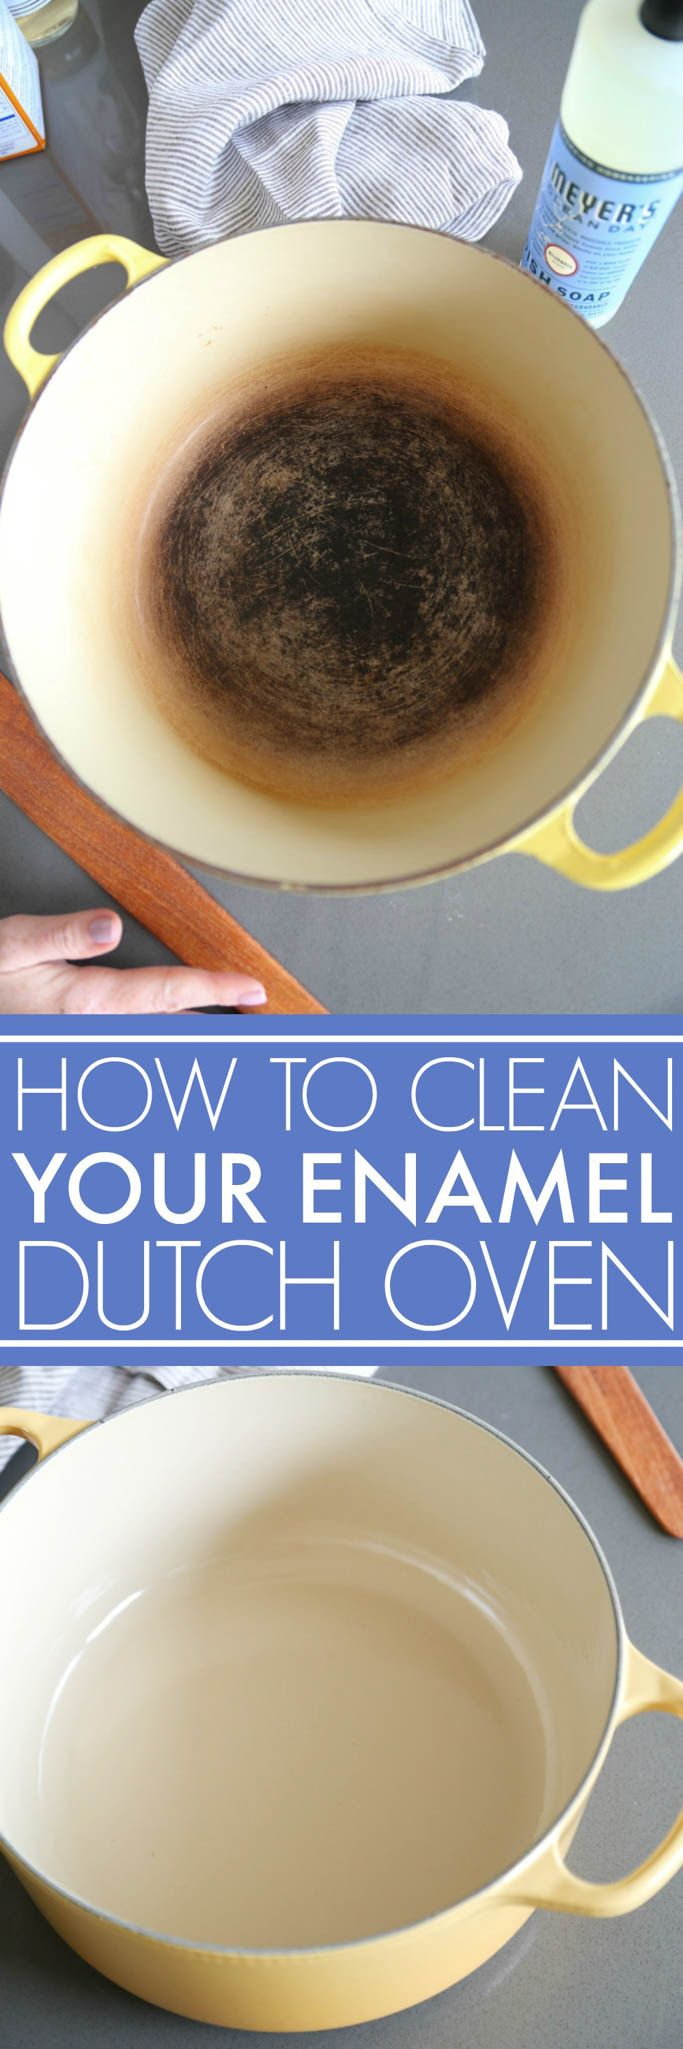 Learn how to clean an enameled cast iron dutch oven with baking soda. It will get rid of any stains and stuck on food without ruining your enameled pot. | #ad platingsandpairings.com #homeiswheremrsmeyersis